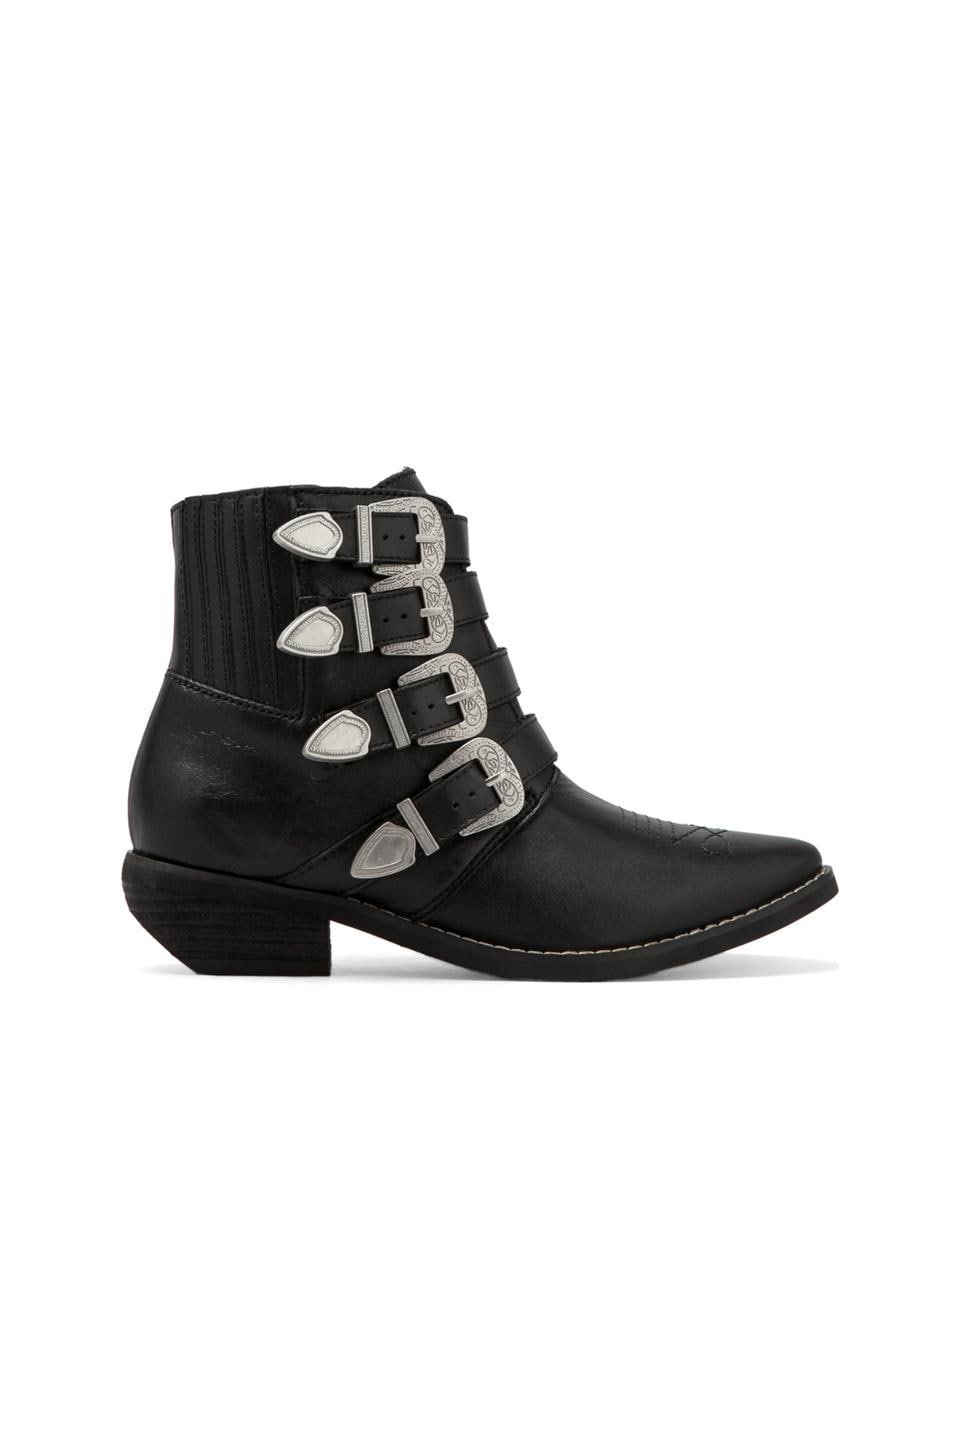 Kelsi Dagger Dallas Boot in Black